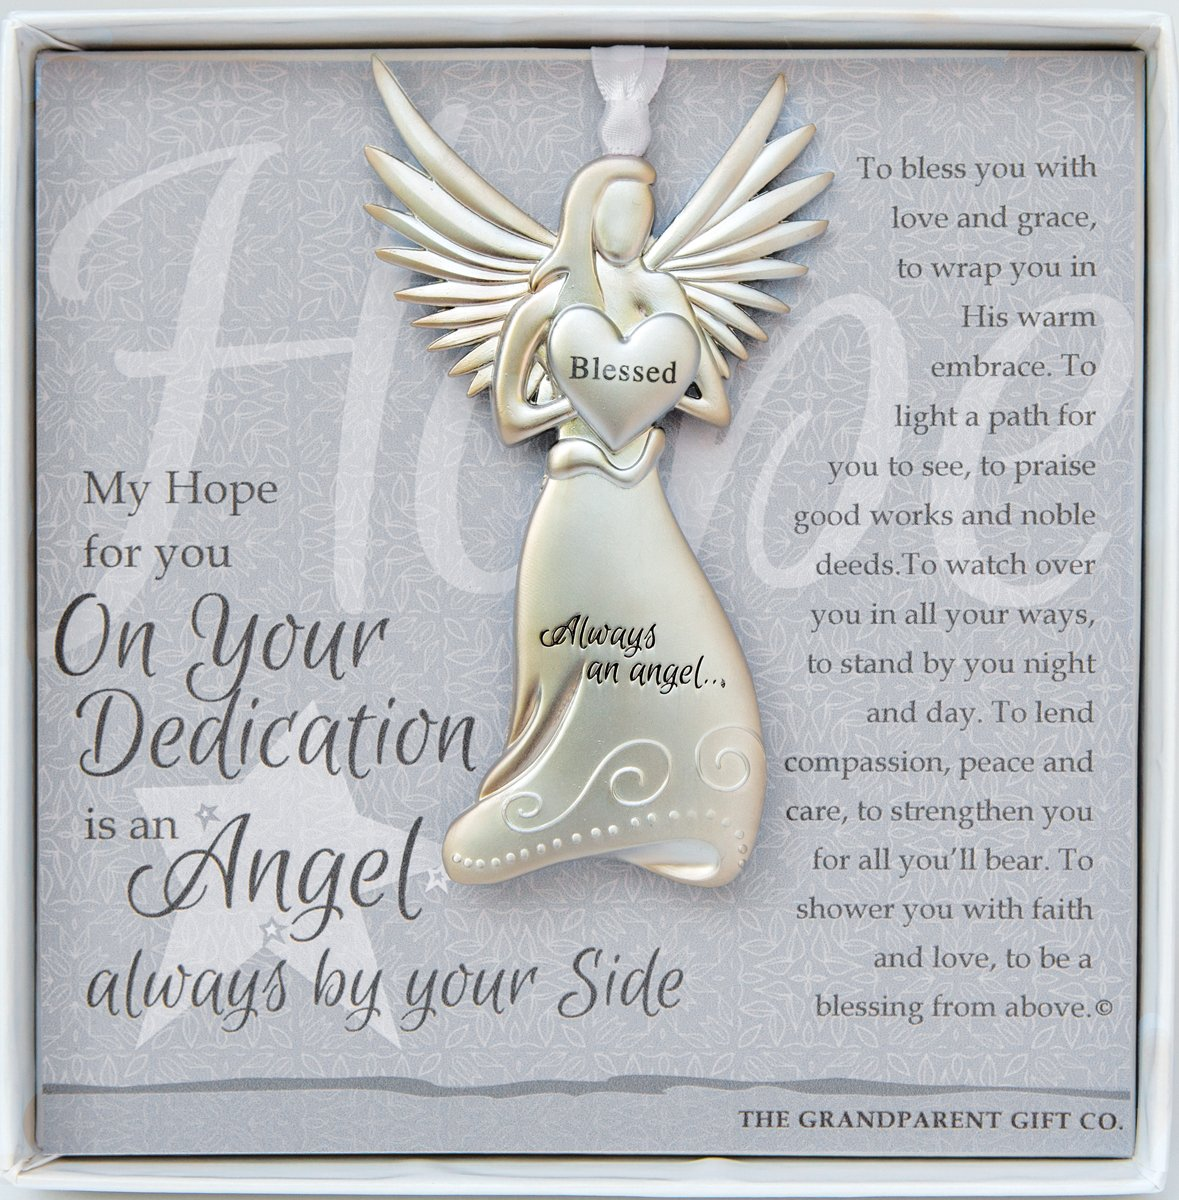 Dedication Gift Guardian Angel Medallion Ornament The Grandparent Gift Co. 4528-2